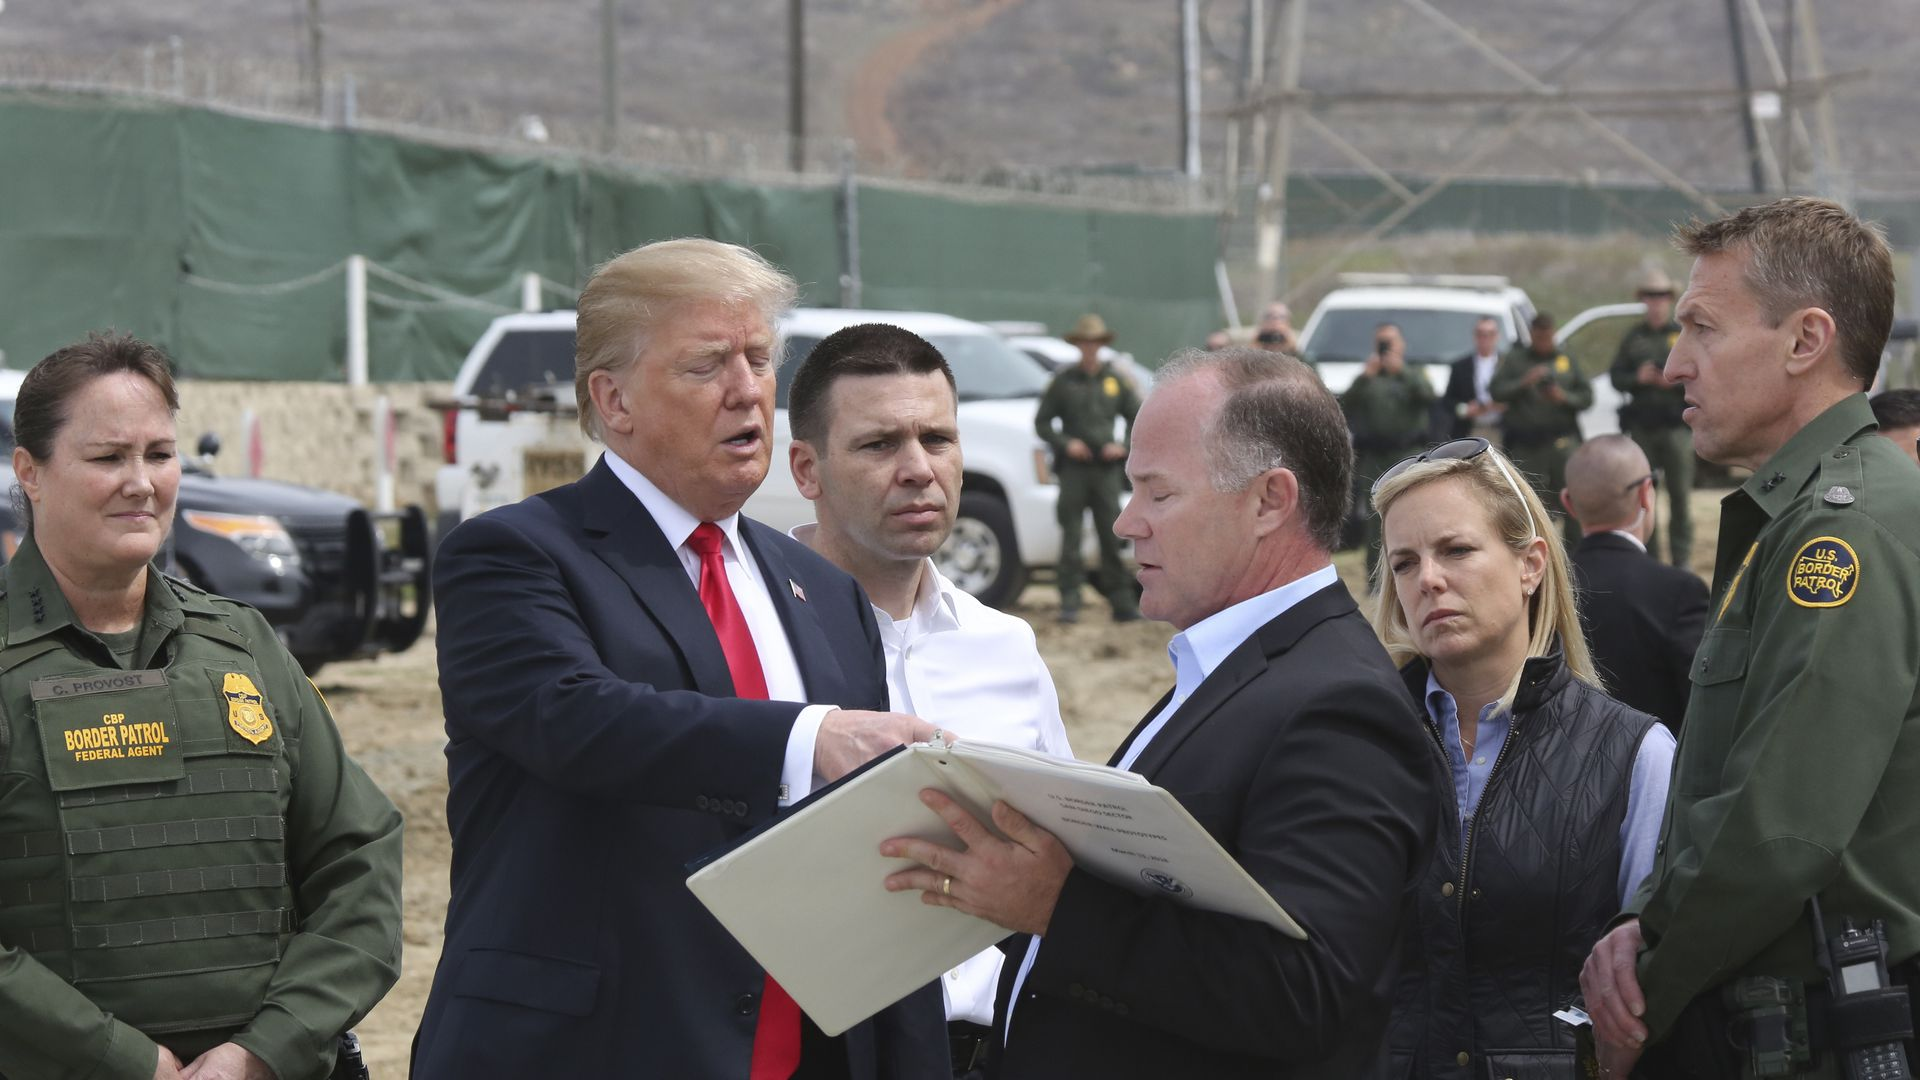 Trump with border patrol agents